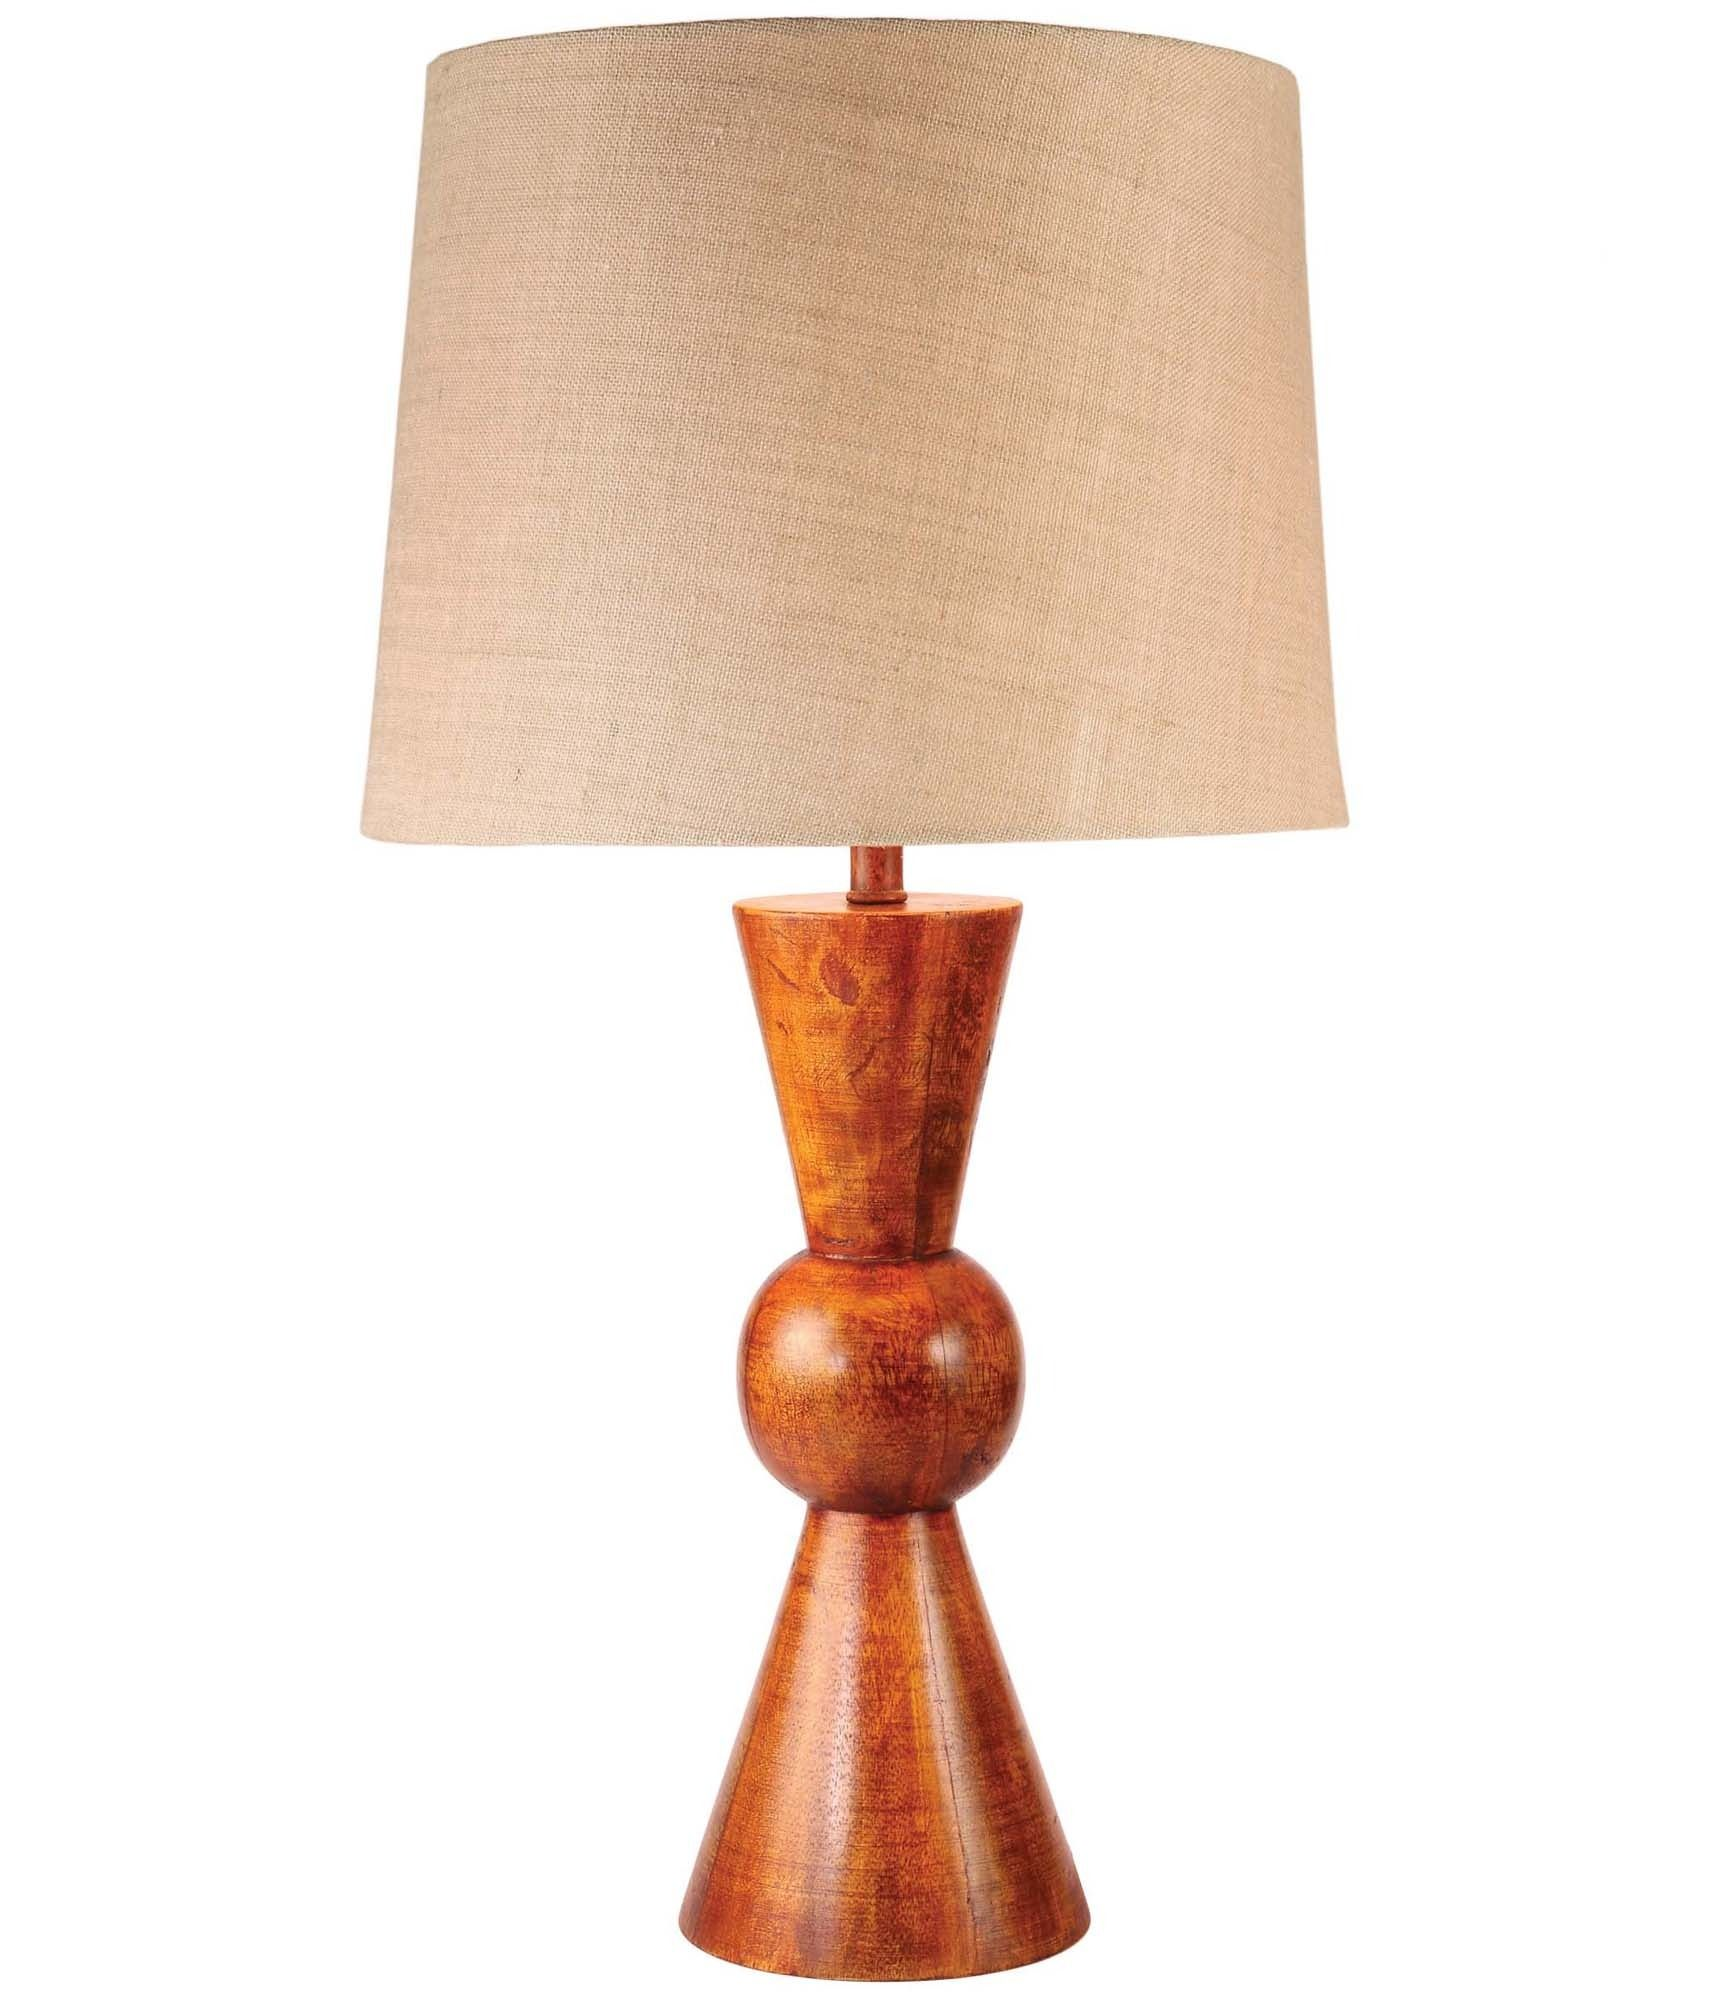 Rica Table Lamp Kenroy Home Home Gallery Stores Lamp Table Lamp Light Table